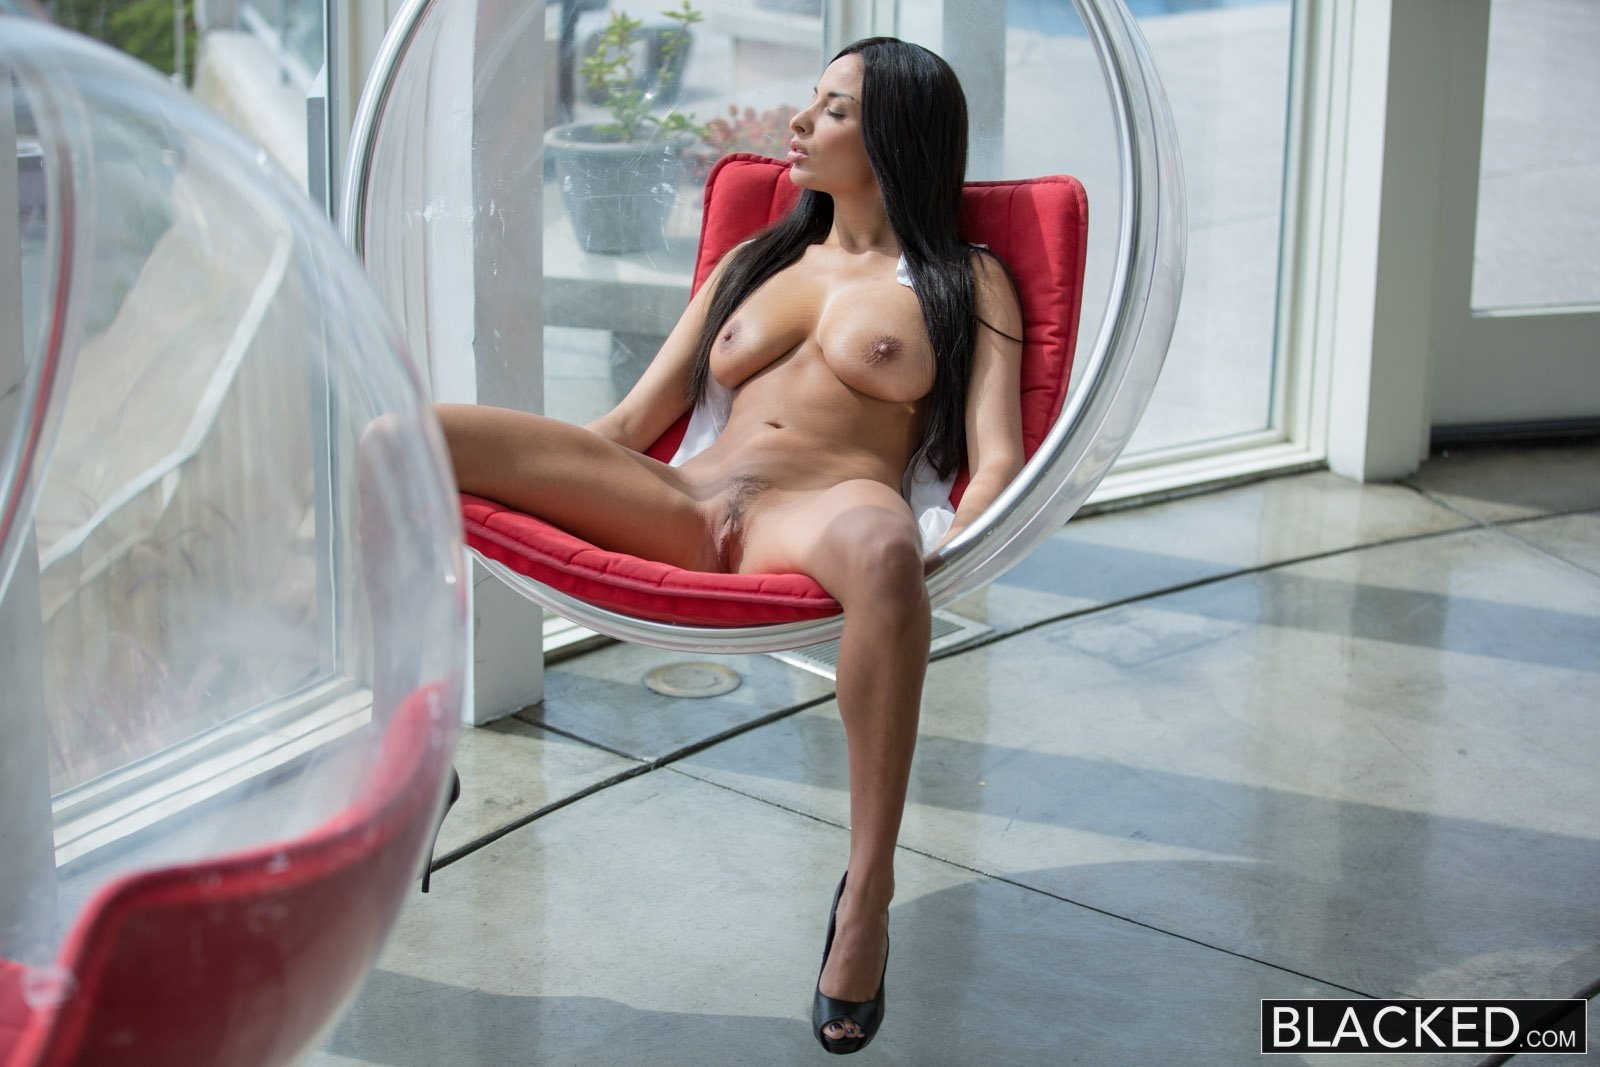 French Girl Anissa Kate Hot Interracial Anal Sex-6036